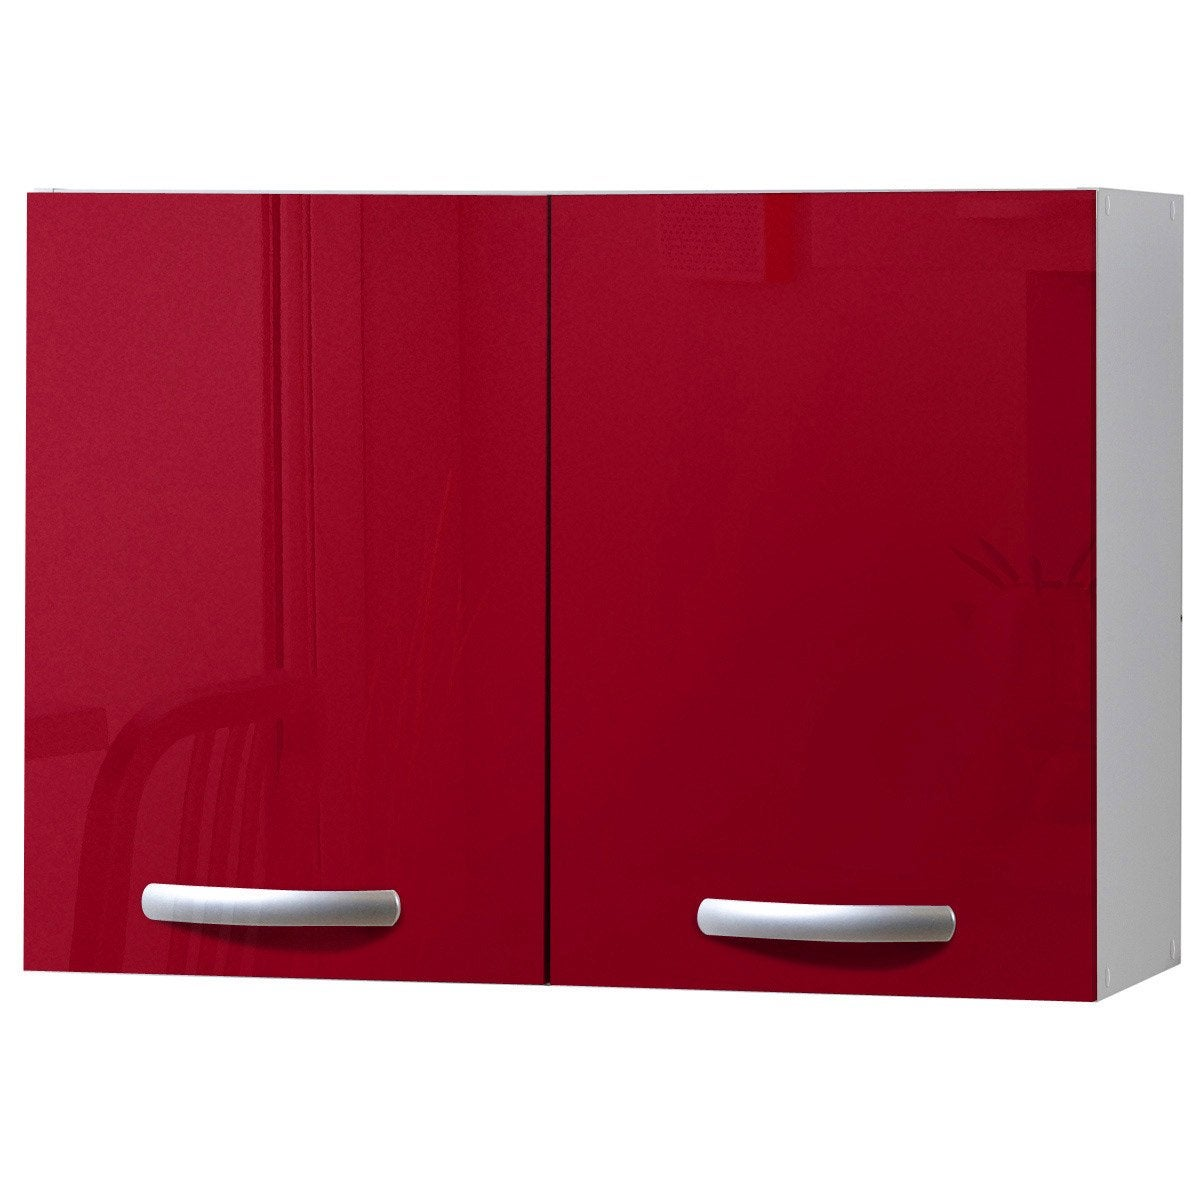 meuble de cuisine haut 2 portes rouge brillant h57x l80x. Black Bedroom Furniture Sets. Home Design Ideas